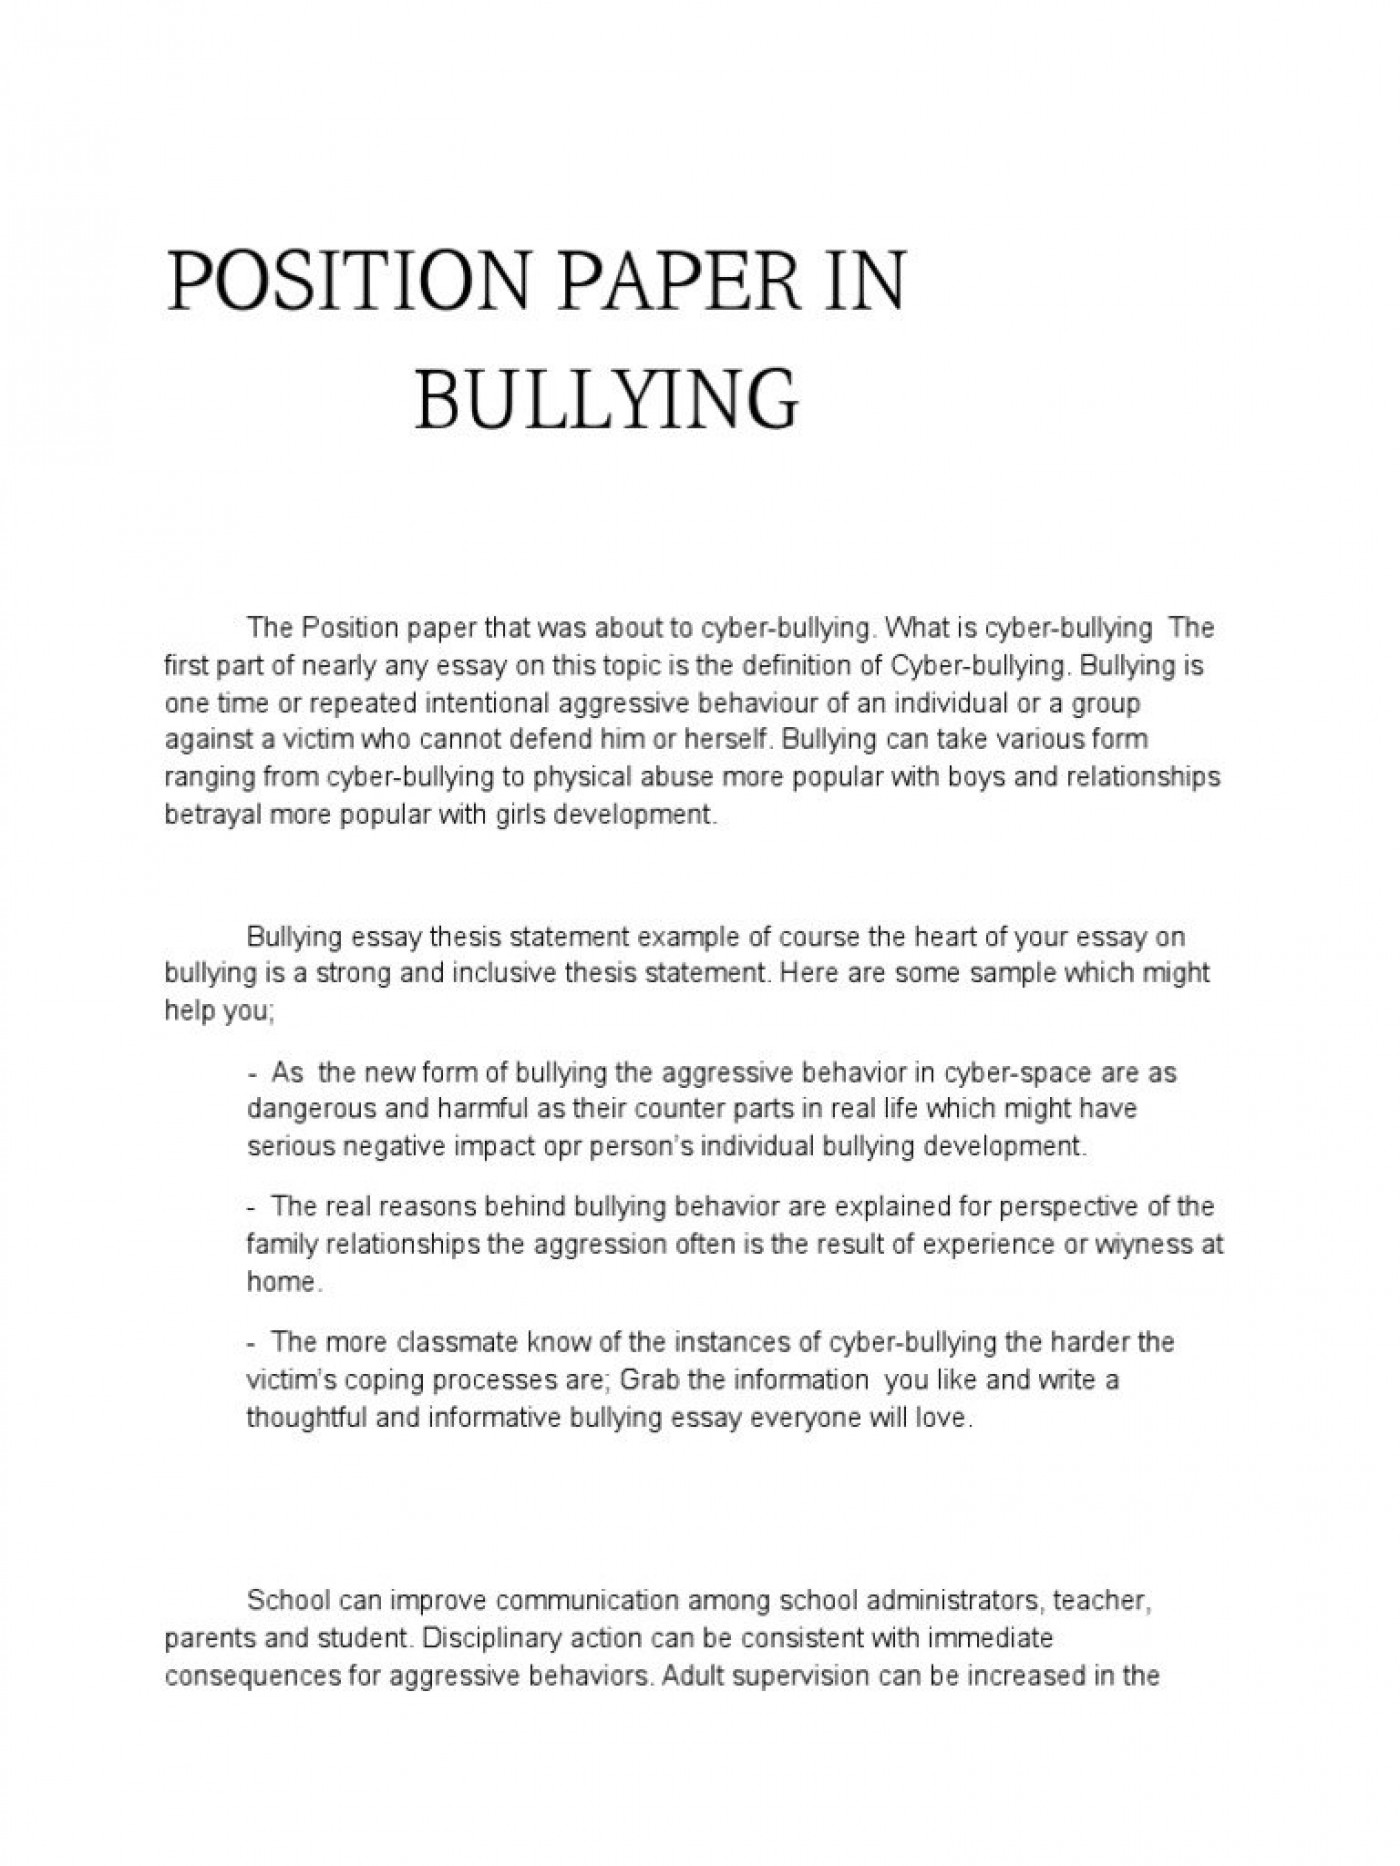 005 Bullying Essay Example Good Conclusion For Academic Writing Service Cause And Effect On In Awful Cyber Outline Creative Titles Anti 1400